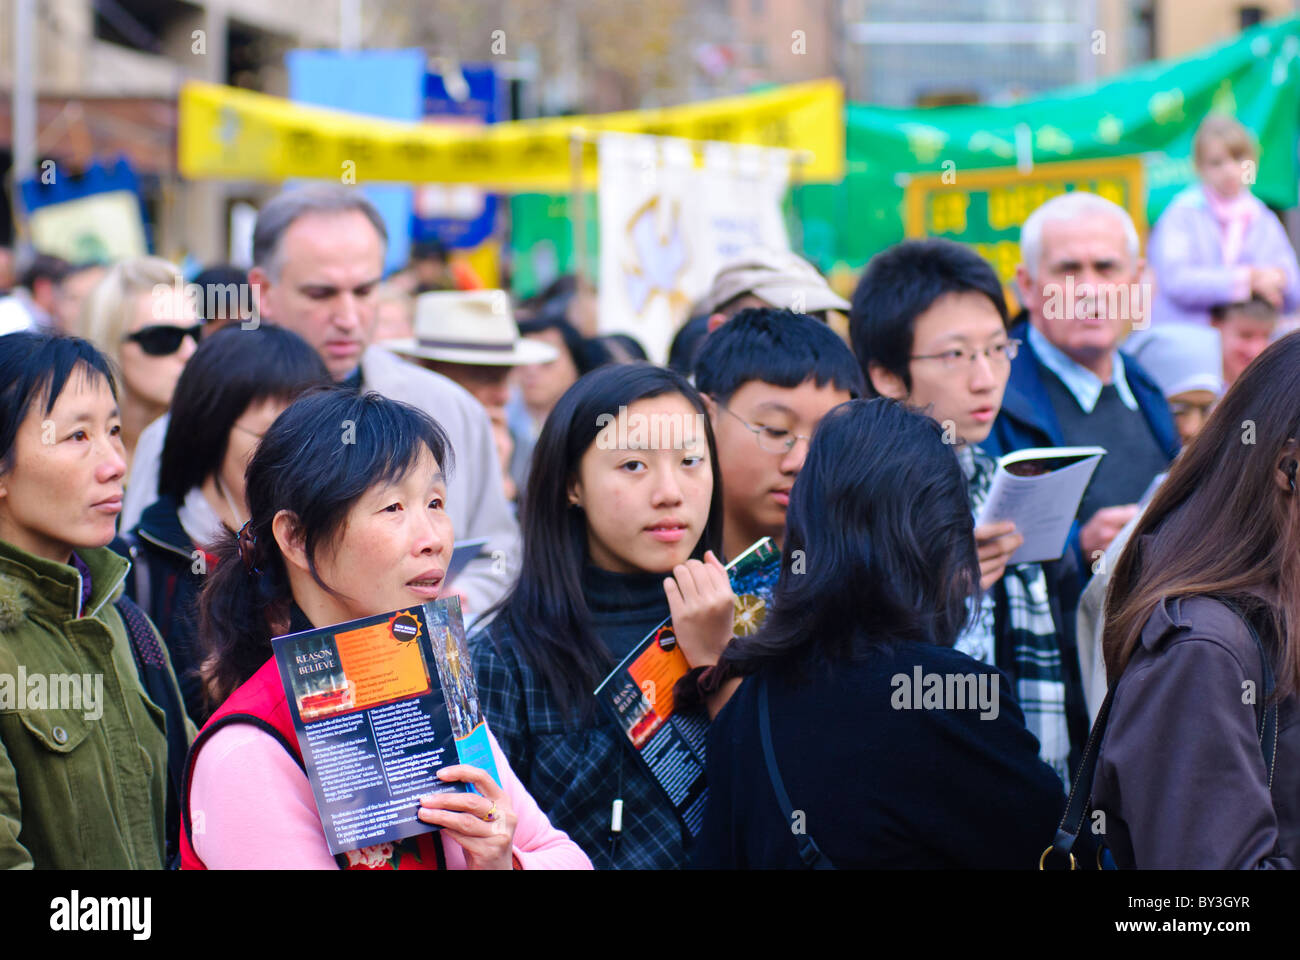 Catholic procession through city streets. Migrants from many cultures are among the people participating. - Stock Image